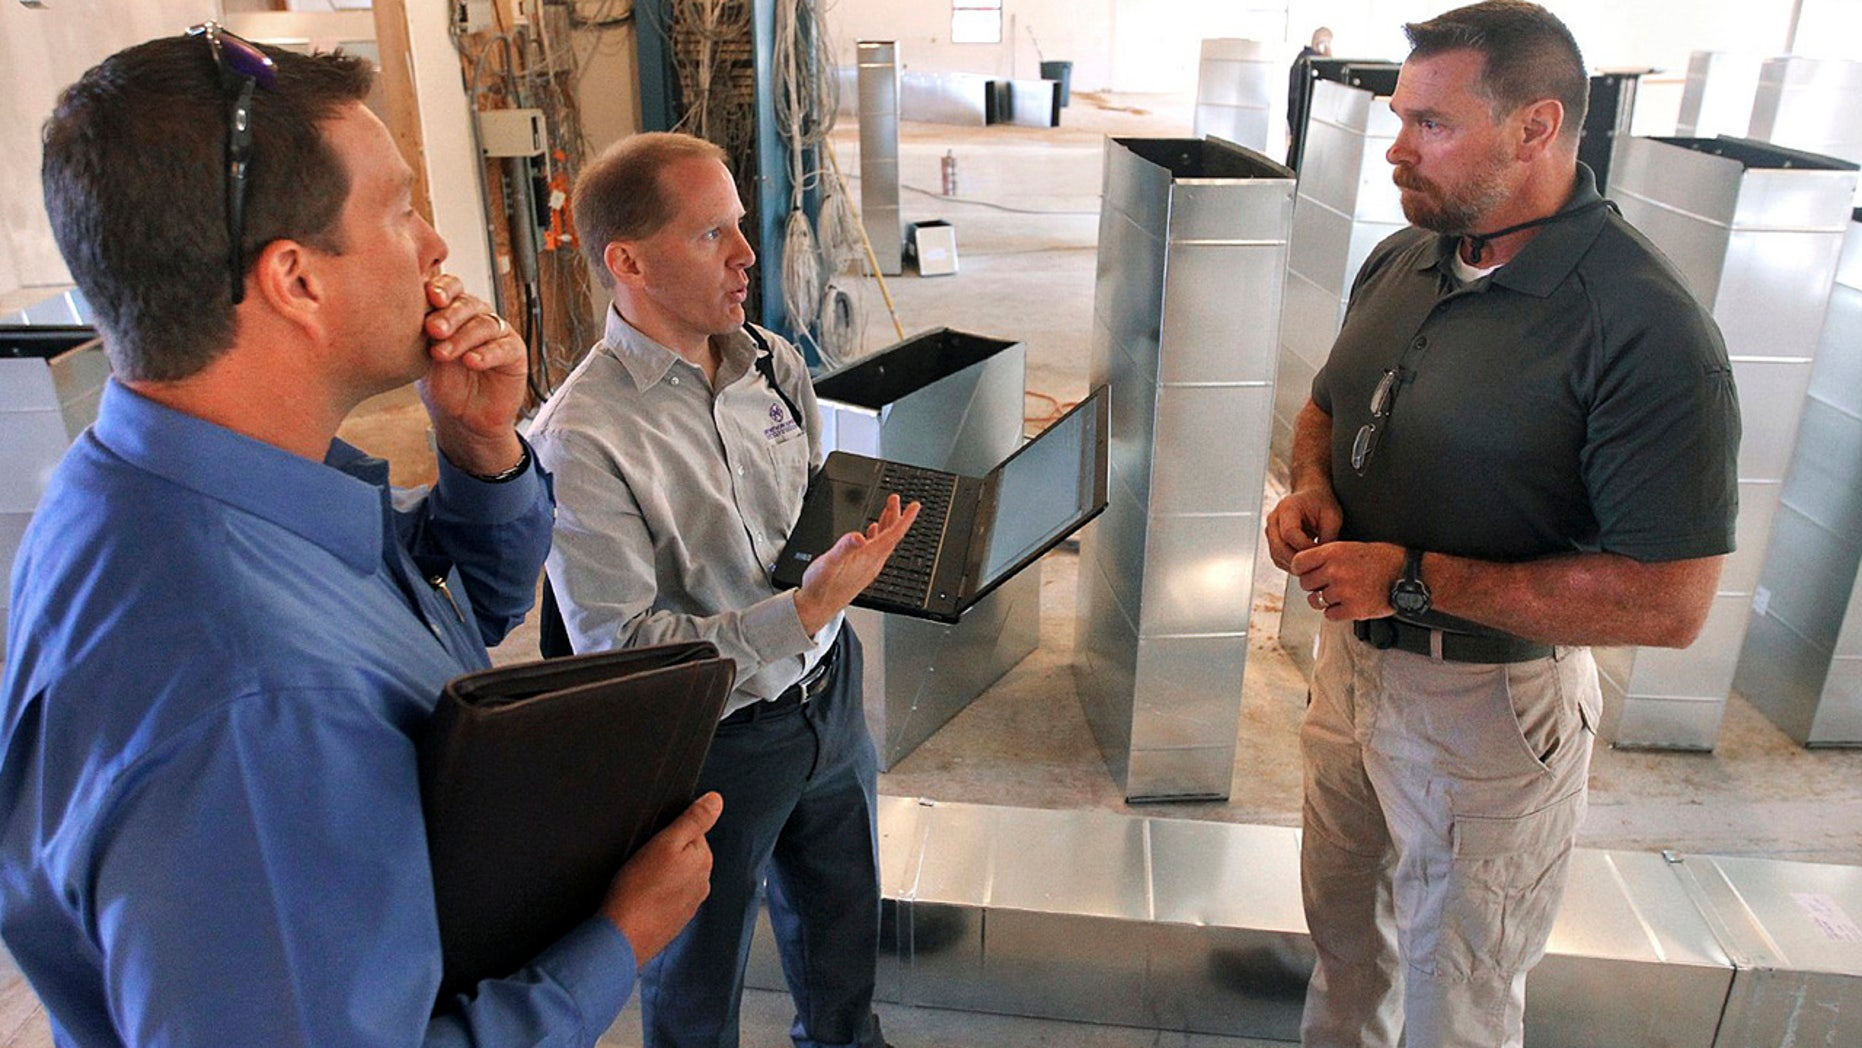 In this Sept. 29, 2015, photo, Scott Abbott, a retired Illinois State Police colonel, speaks with Mark Lewis, left, and Jeff Greer at the new medical marijuana dispensary being built in Collinsville, Ill. Abbott is the director of security and compliance with Health Central, Lewis is the director of finance and human resources for Health Central and Greer is with LRS Network Support. (Steve Nagy/Belleville News-Democrat via AP)